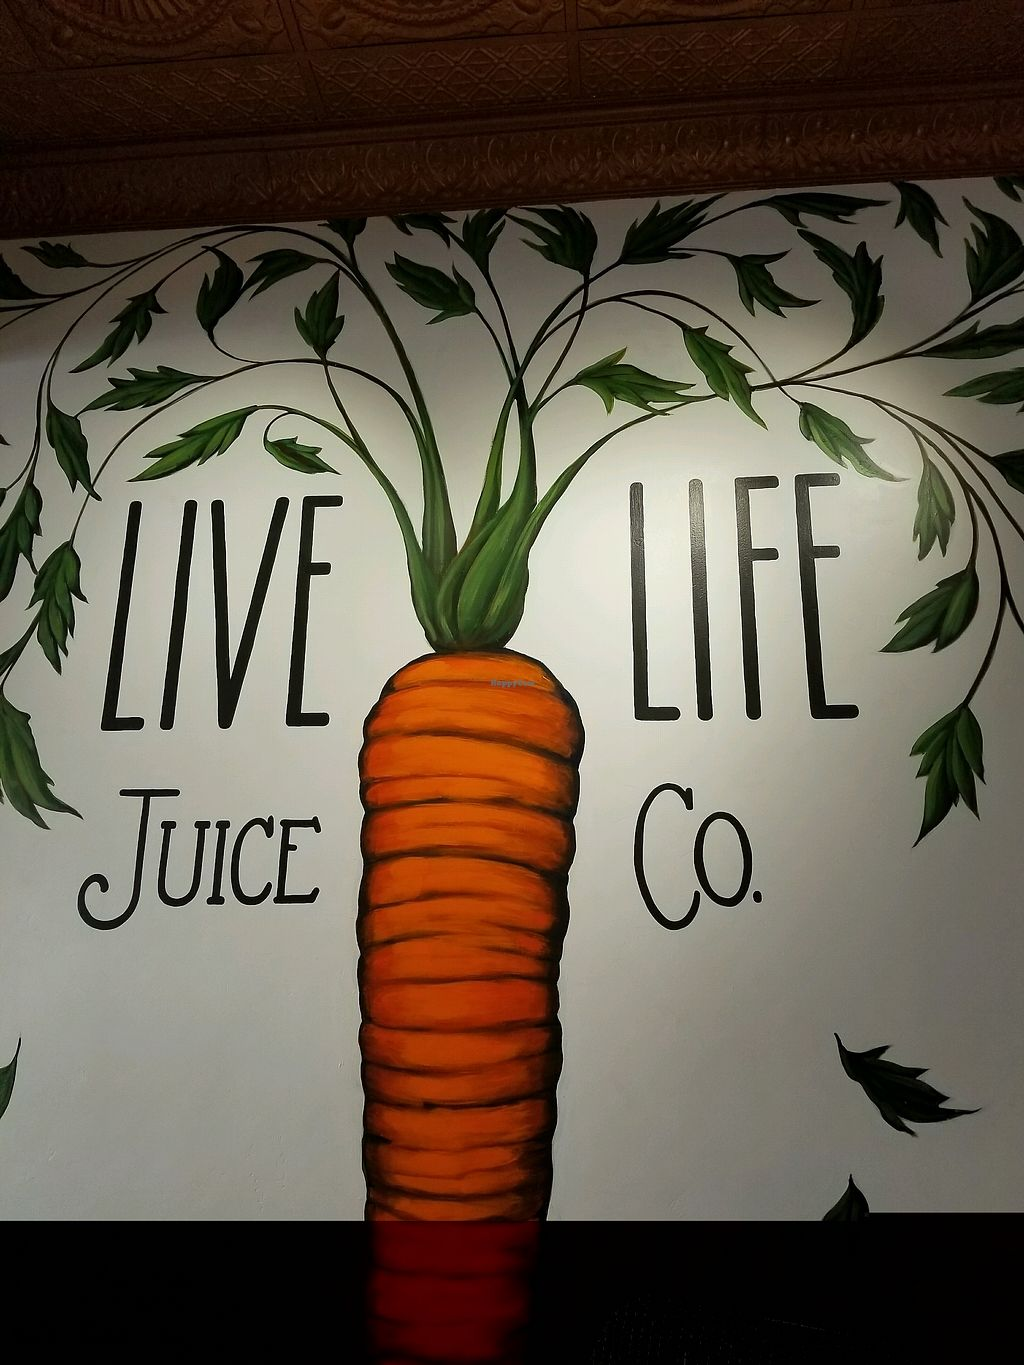 """Photo of Live Life Juice Co  by <a href=""""/members/profile/Calimimi"""">Calimimi</a> <br/>wall art <br/> February 1, 2018  - <a href='/contact/abuse/image/107575/353749'>Report</a>"""